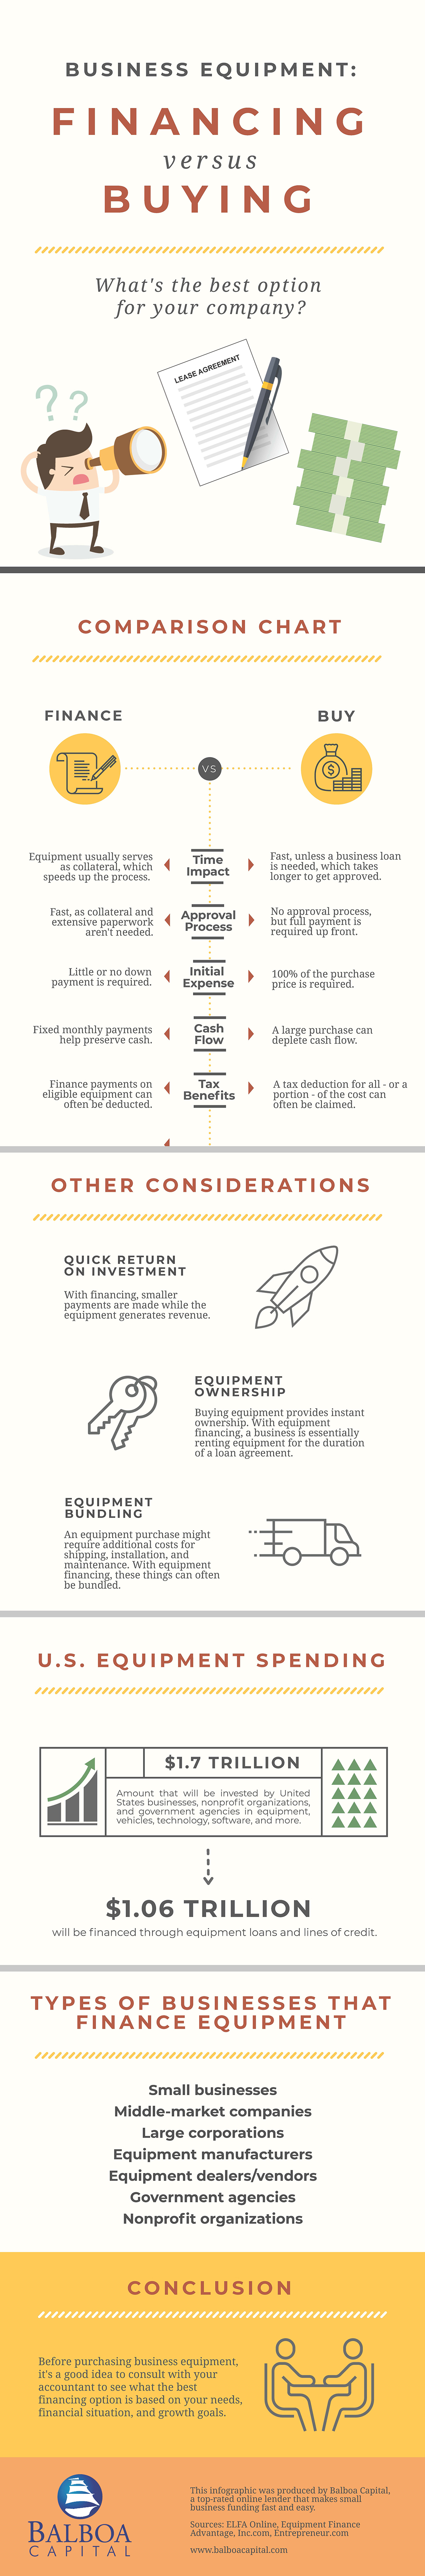 Financing vs. Buying Equipment Infographic